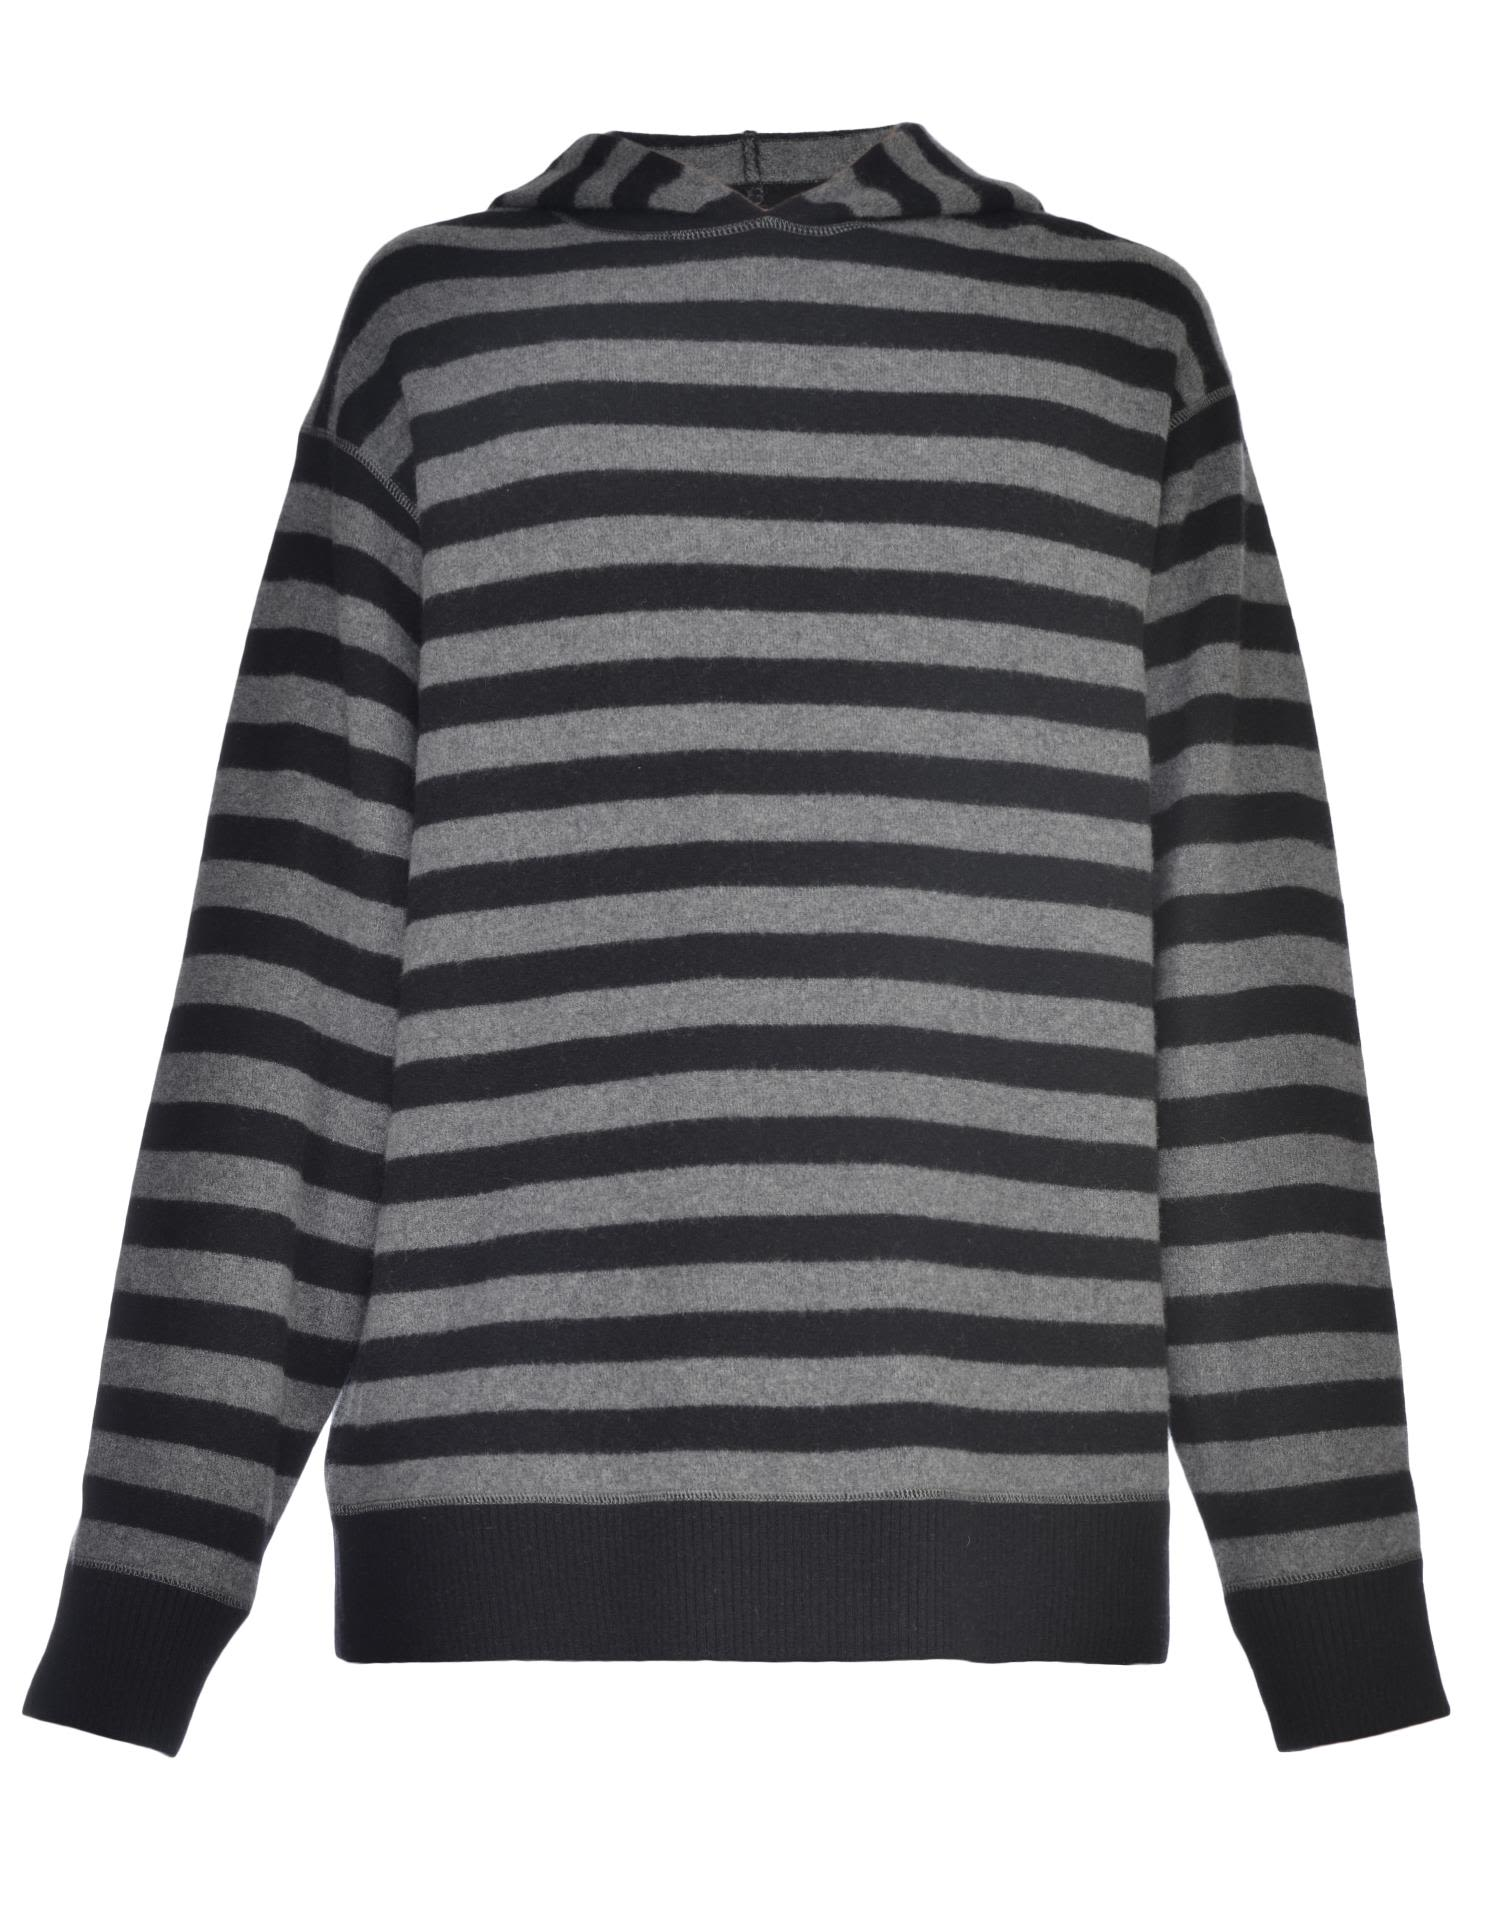 Alexander Wang Wool Sweater